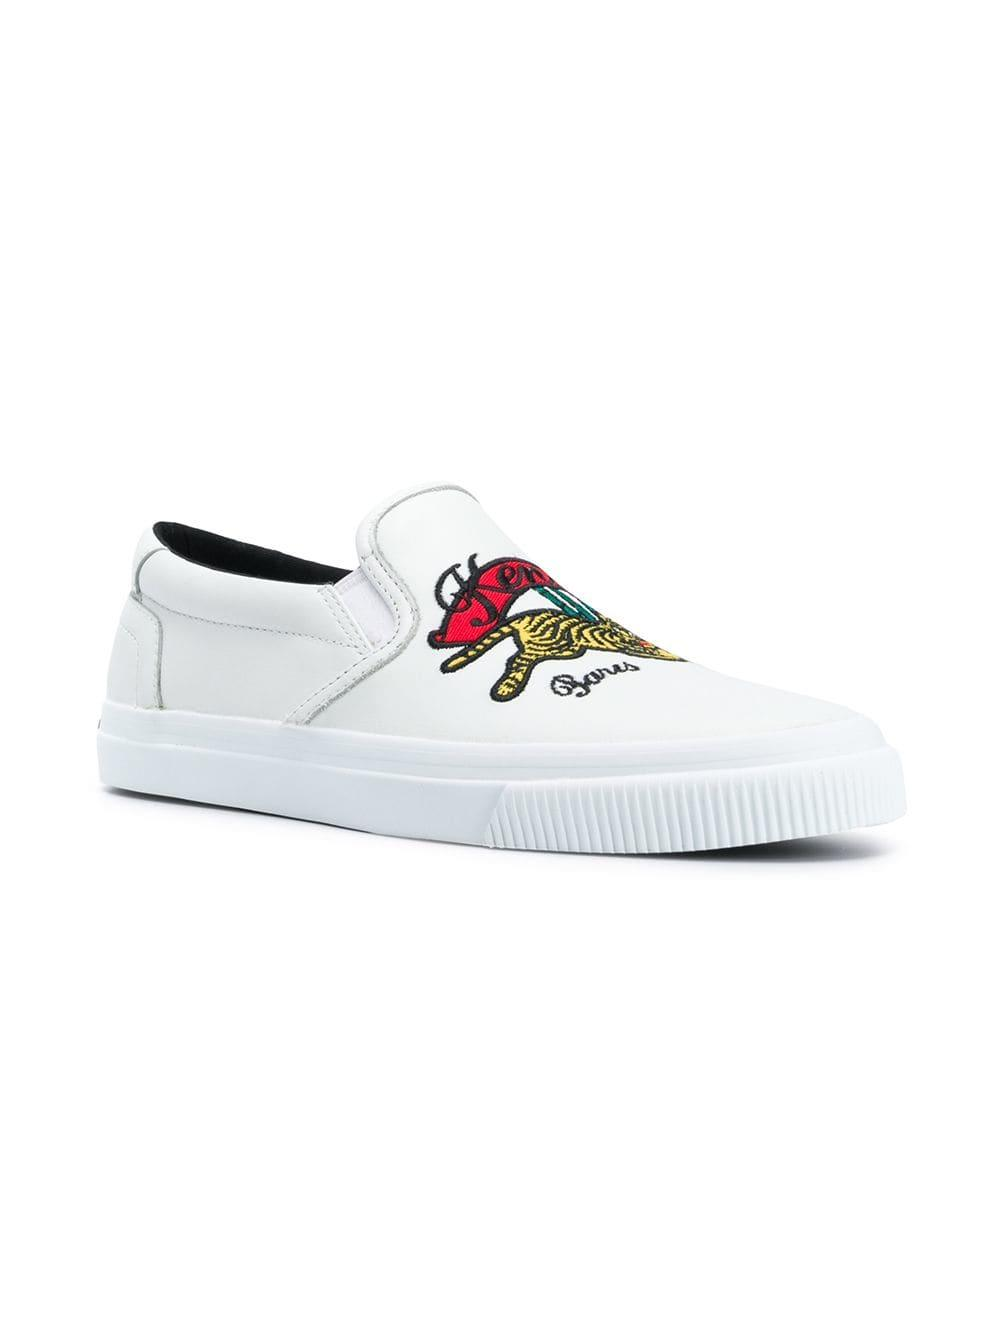 fe782e8206b Lyst - KENZO K-skate Jumping Tiger Sneakers in White - Save  36.09756097560975%